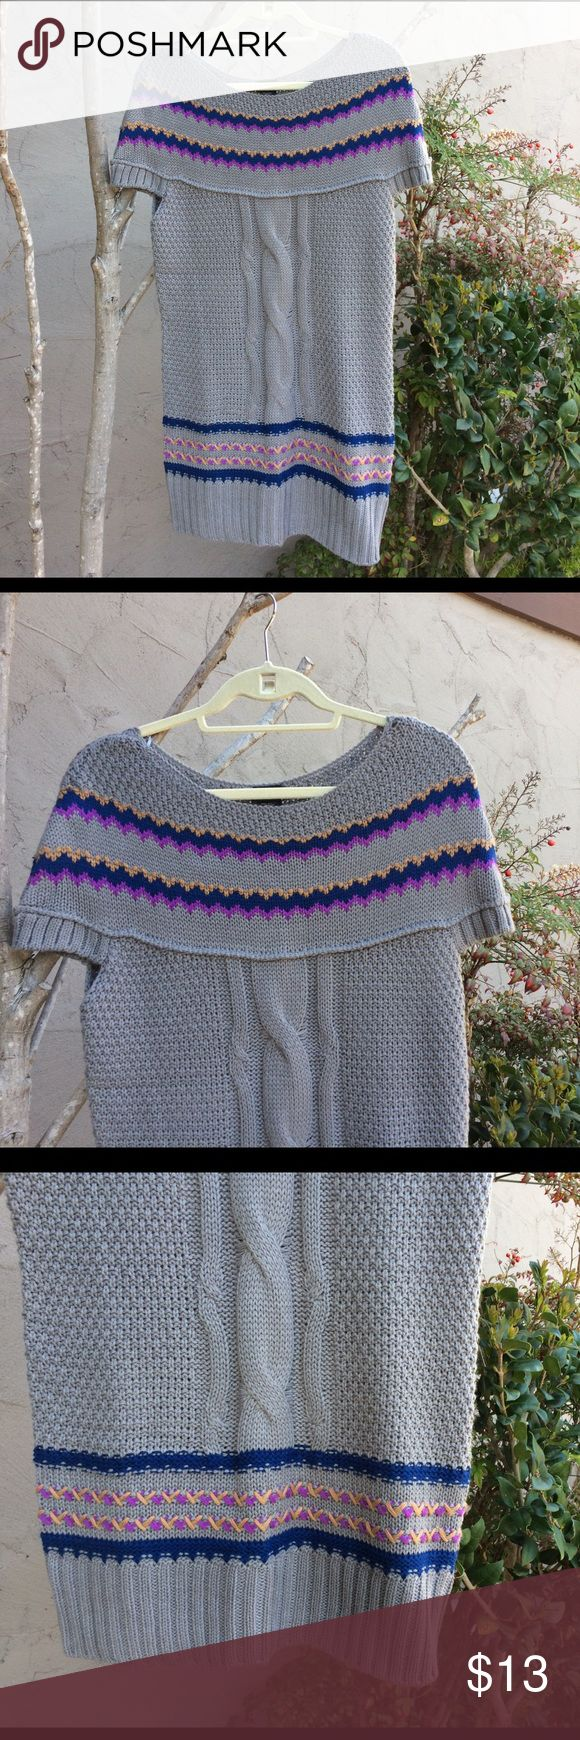 NWT CANYON RIVER BLUES TUNIC SWEATER Pretty gray cable knit sweater with pretty purple/blue & gold design! Short sleeve! NWT 100% acrylic SZ LARGE CANYON RIVER BLUES Sweaters